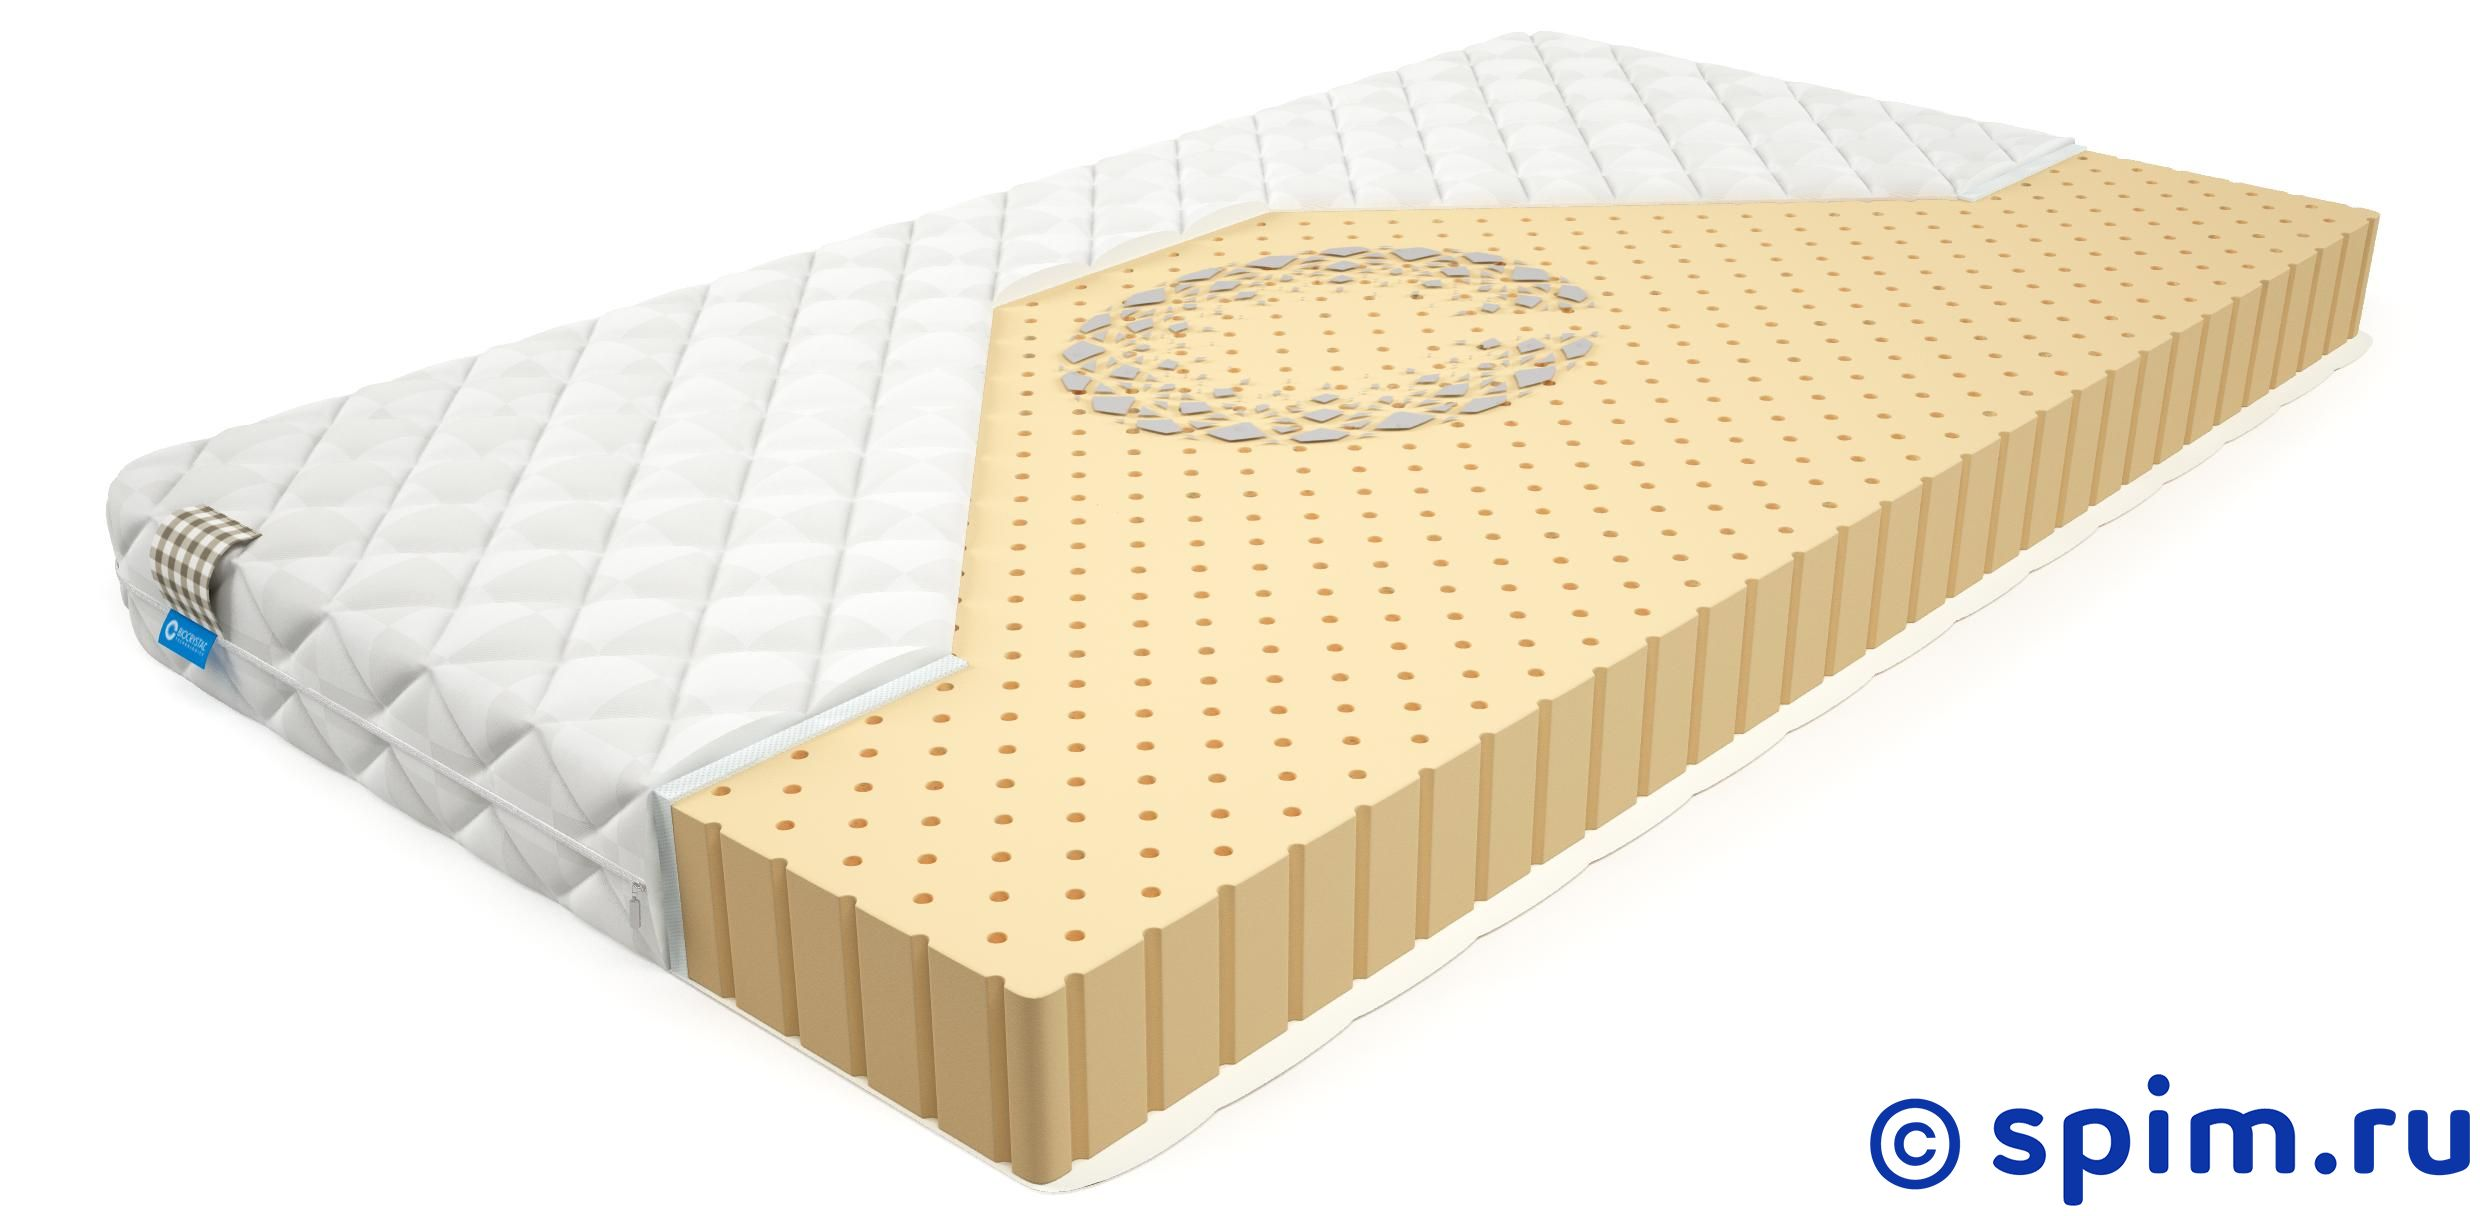 Матрас Mr.Mattress Foxton L 160х195 см  - Купить